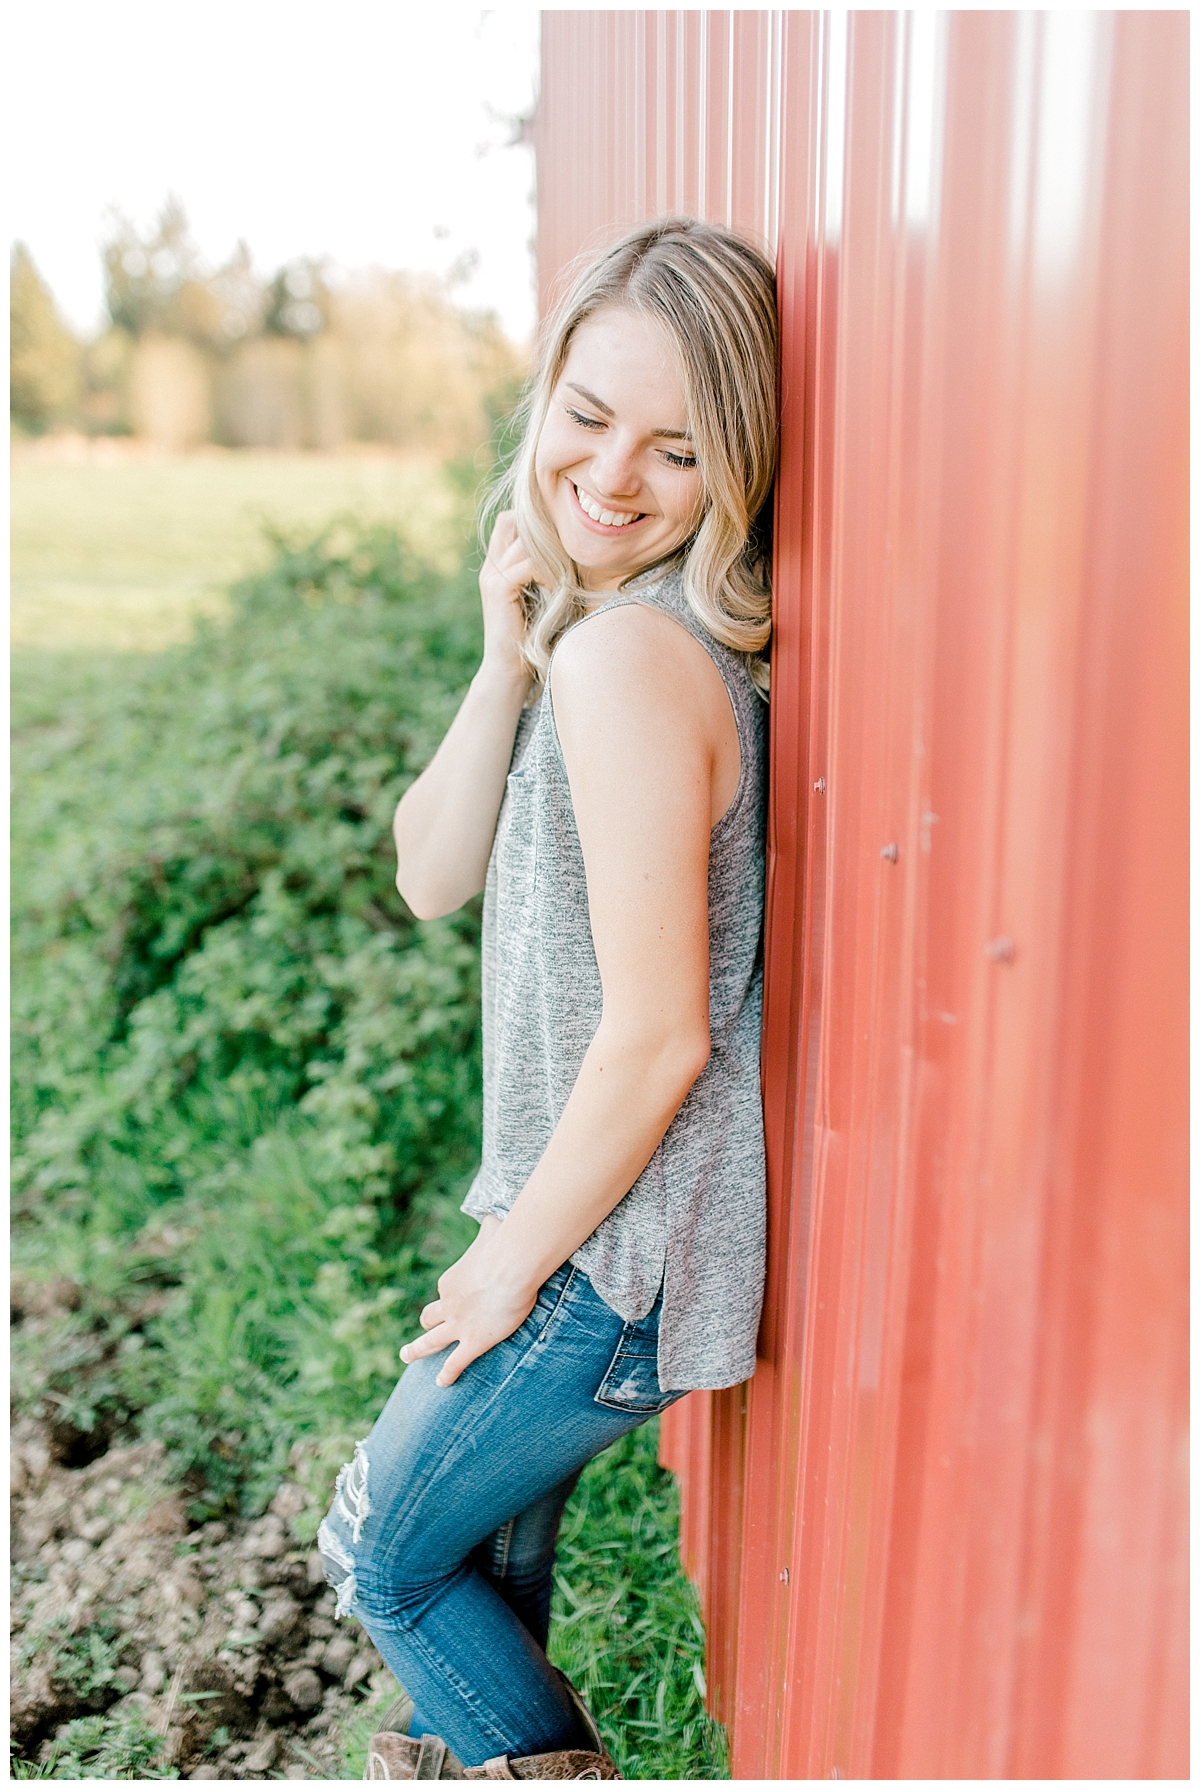 Sunset Senior Session with Horse | Senior Session Inspiration Session | Horse Photo Session | Pacific Northwest Light and Airy Wedding and Portrait Photographer | Emma Rose Company | Kindred Presets Senior.jpg